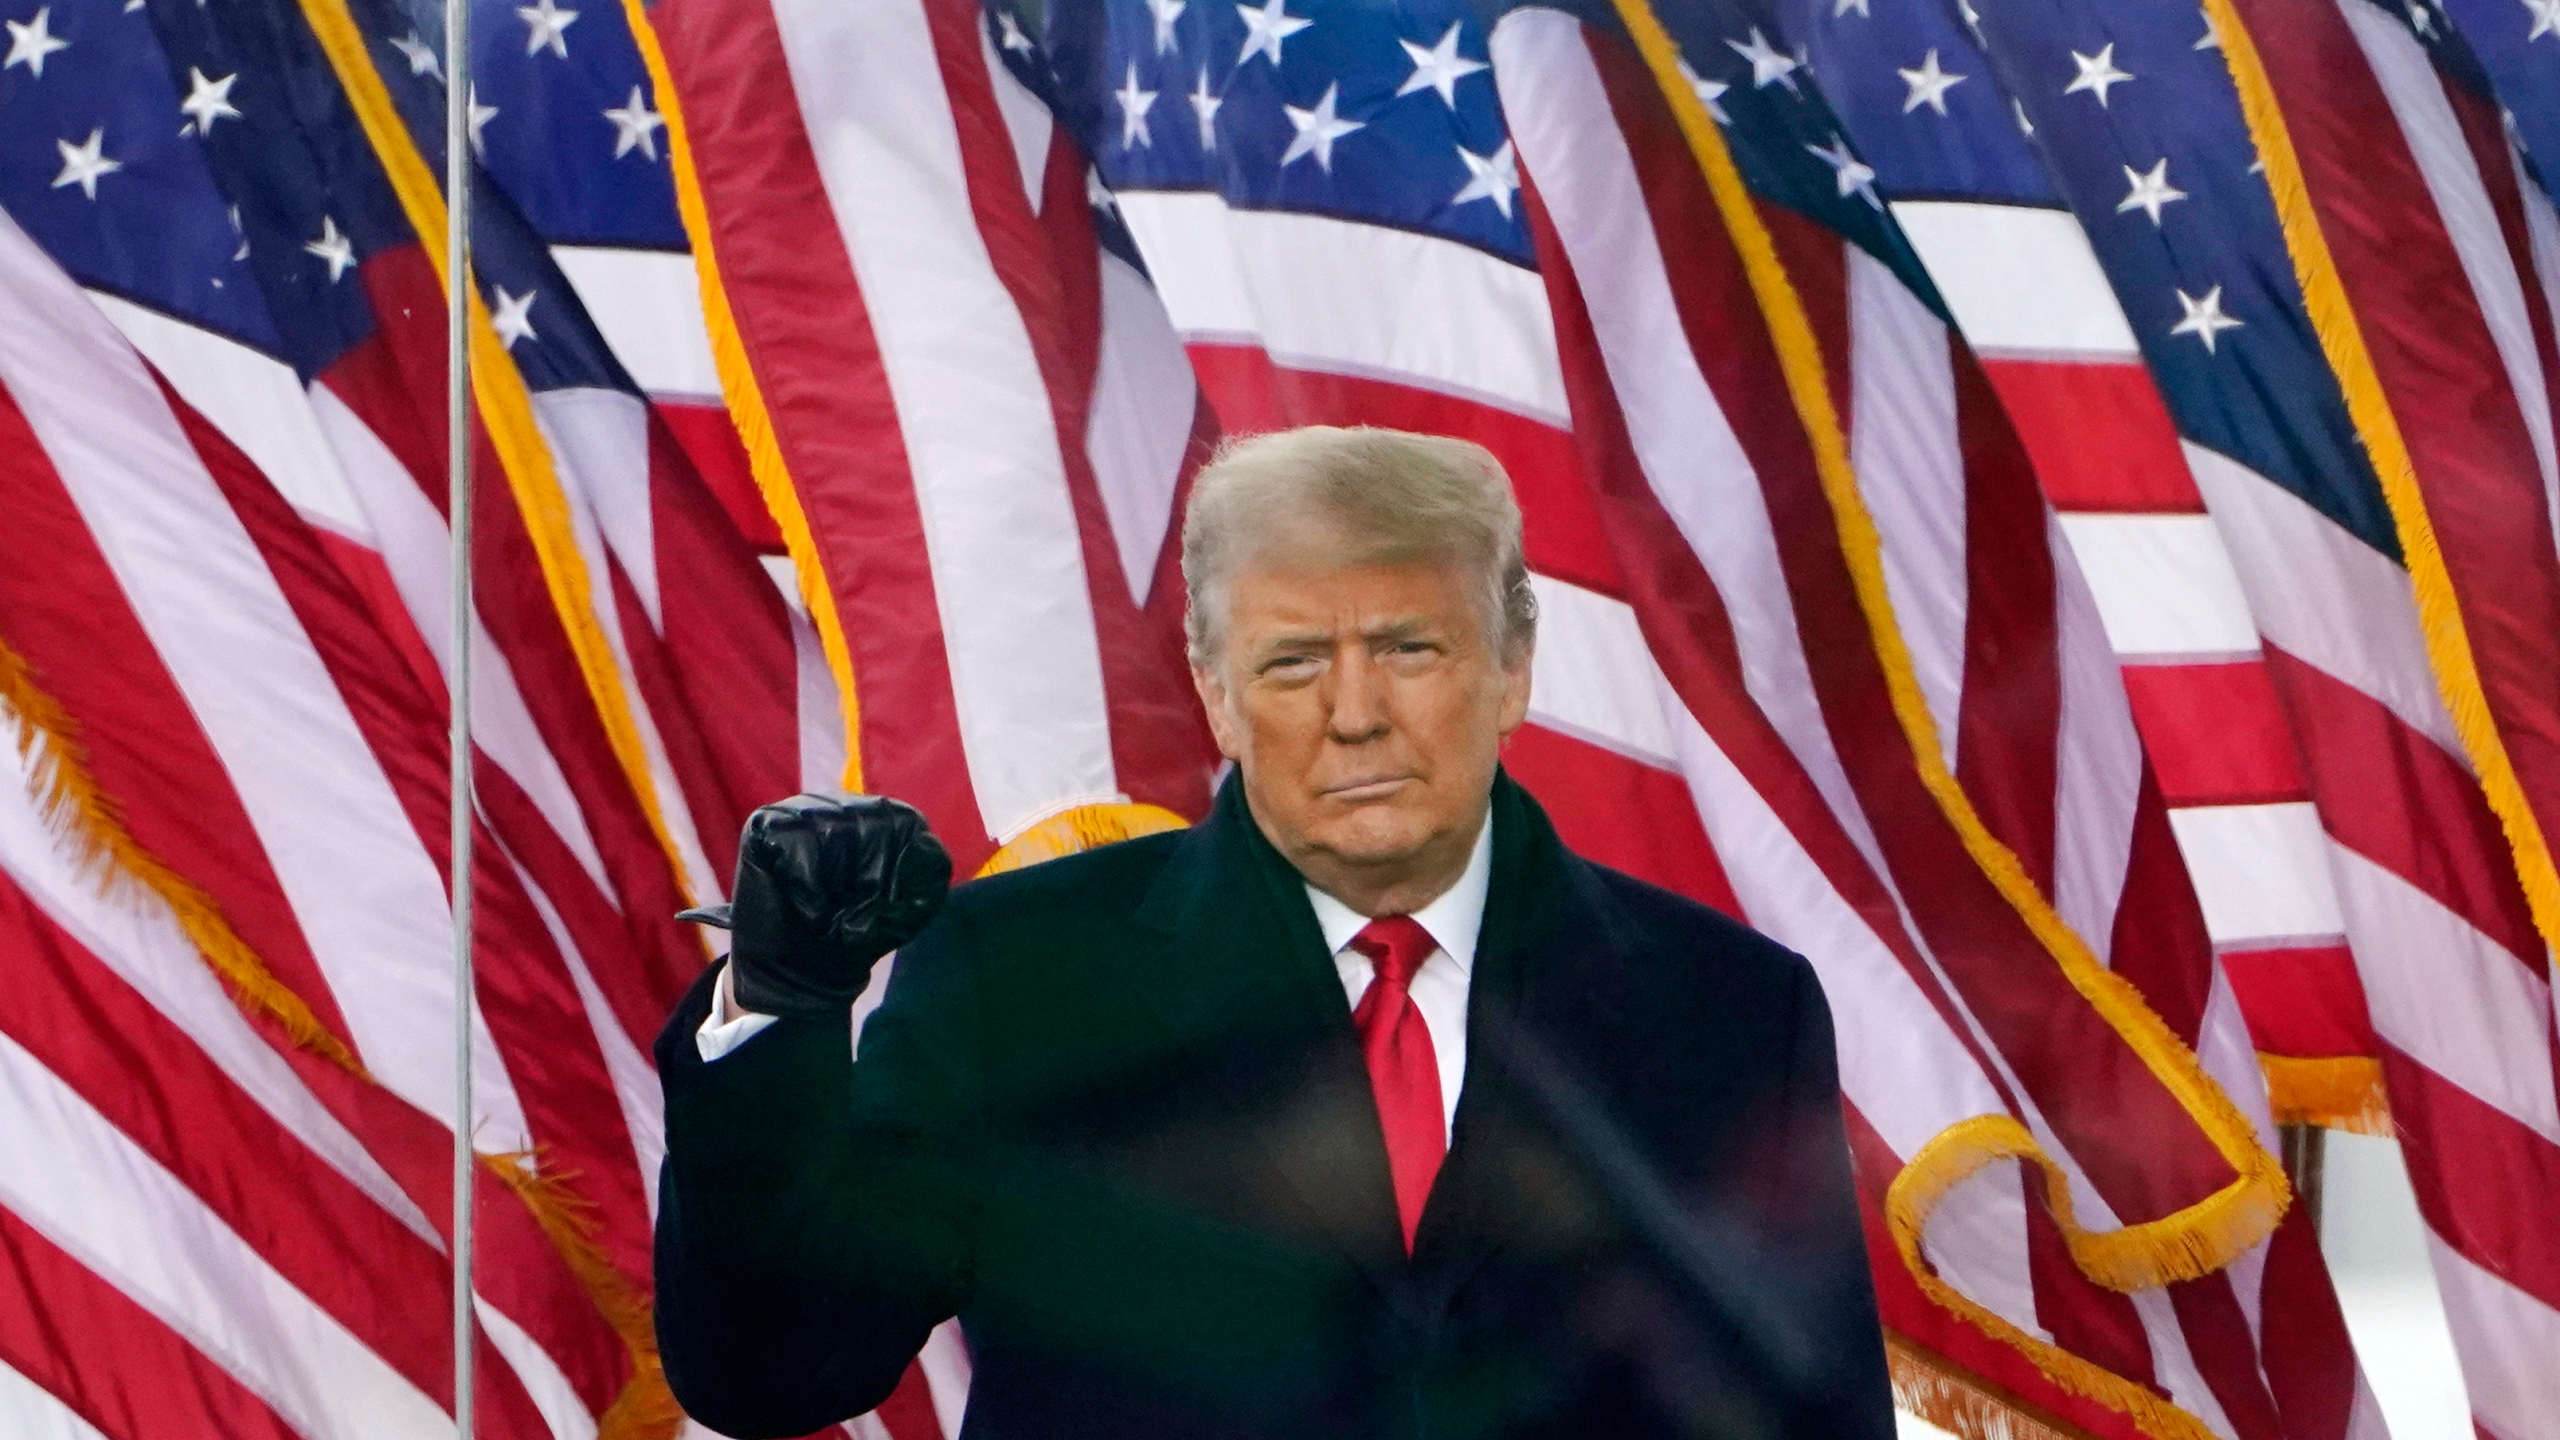 FILE - In this Jan. 6, 2021, file photo, President Donald Trump arrives to speak at a rally in Washington. (AP Photo/Jacquelyn Martin, File)